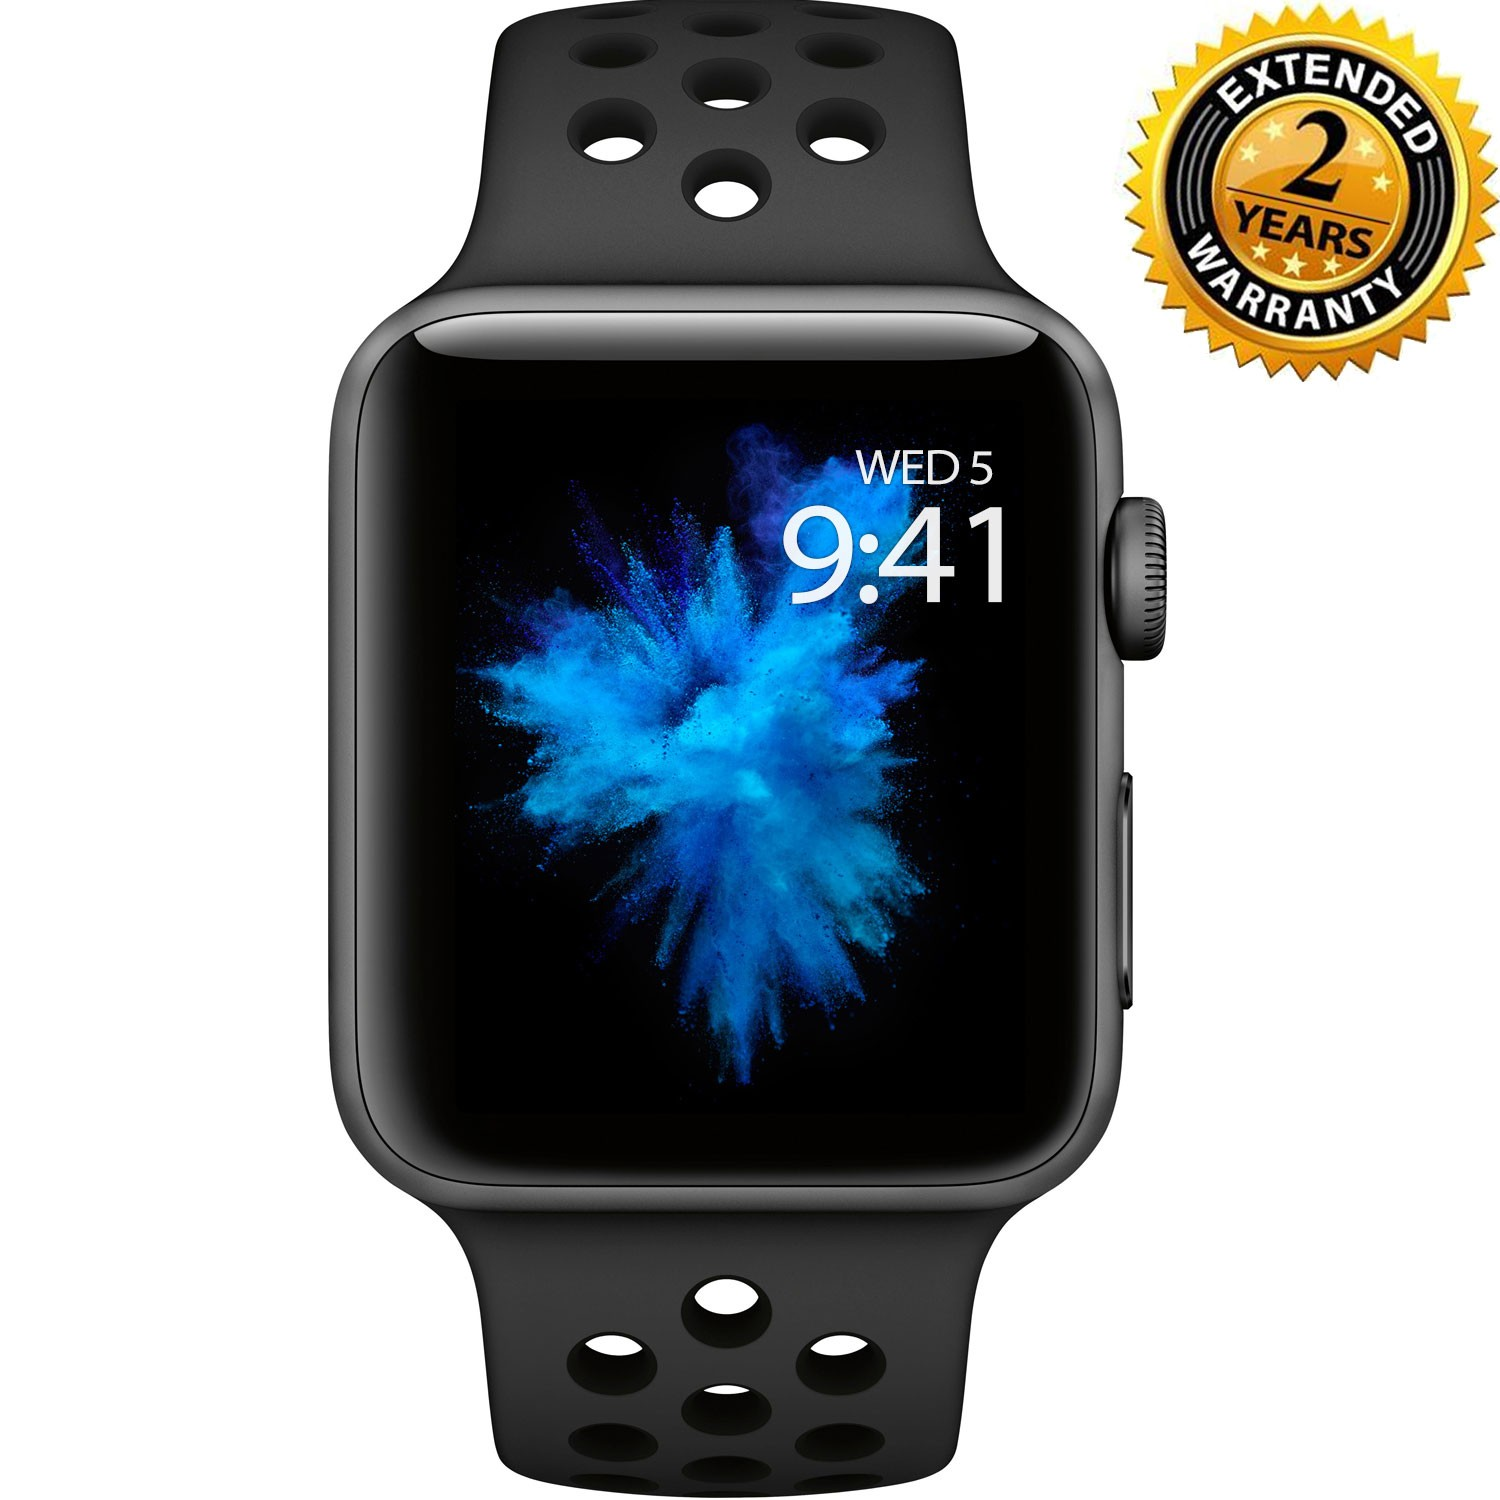 enfocar Realmente cada vez  Apple Watch Nike+ Series 3 38mm Smartwatch (GPS Only, Space Gray Aluminum  Case, Anthracite/Black Nike Sport Band Band) with 2 Year Extended Warranty  - Walmart.com - Walmart.com